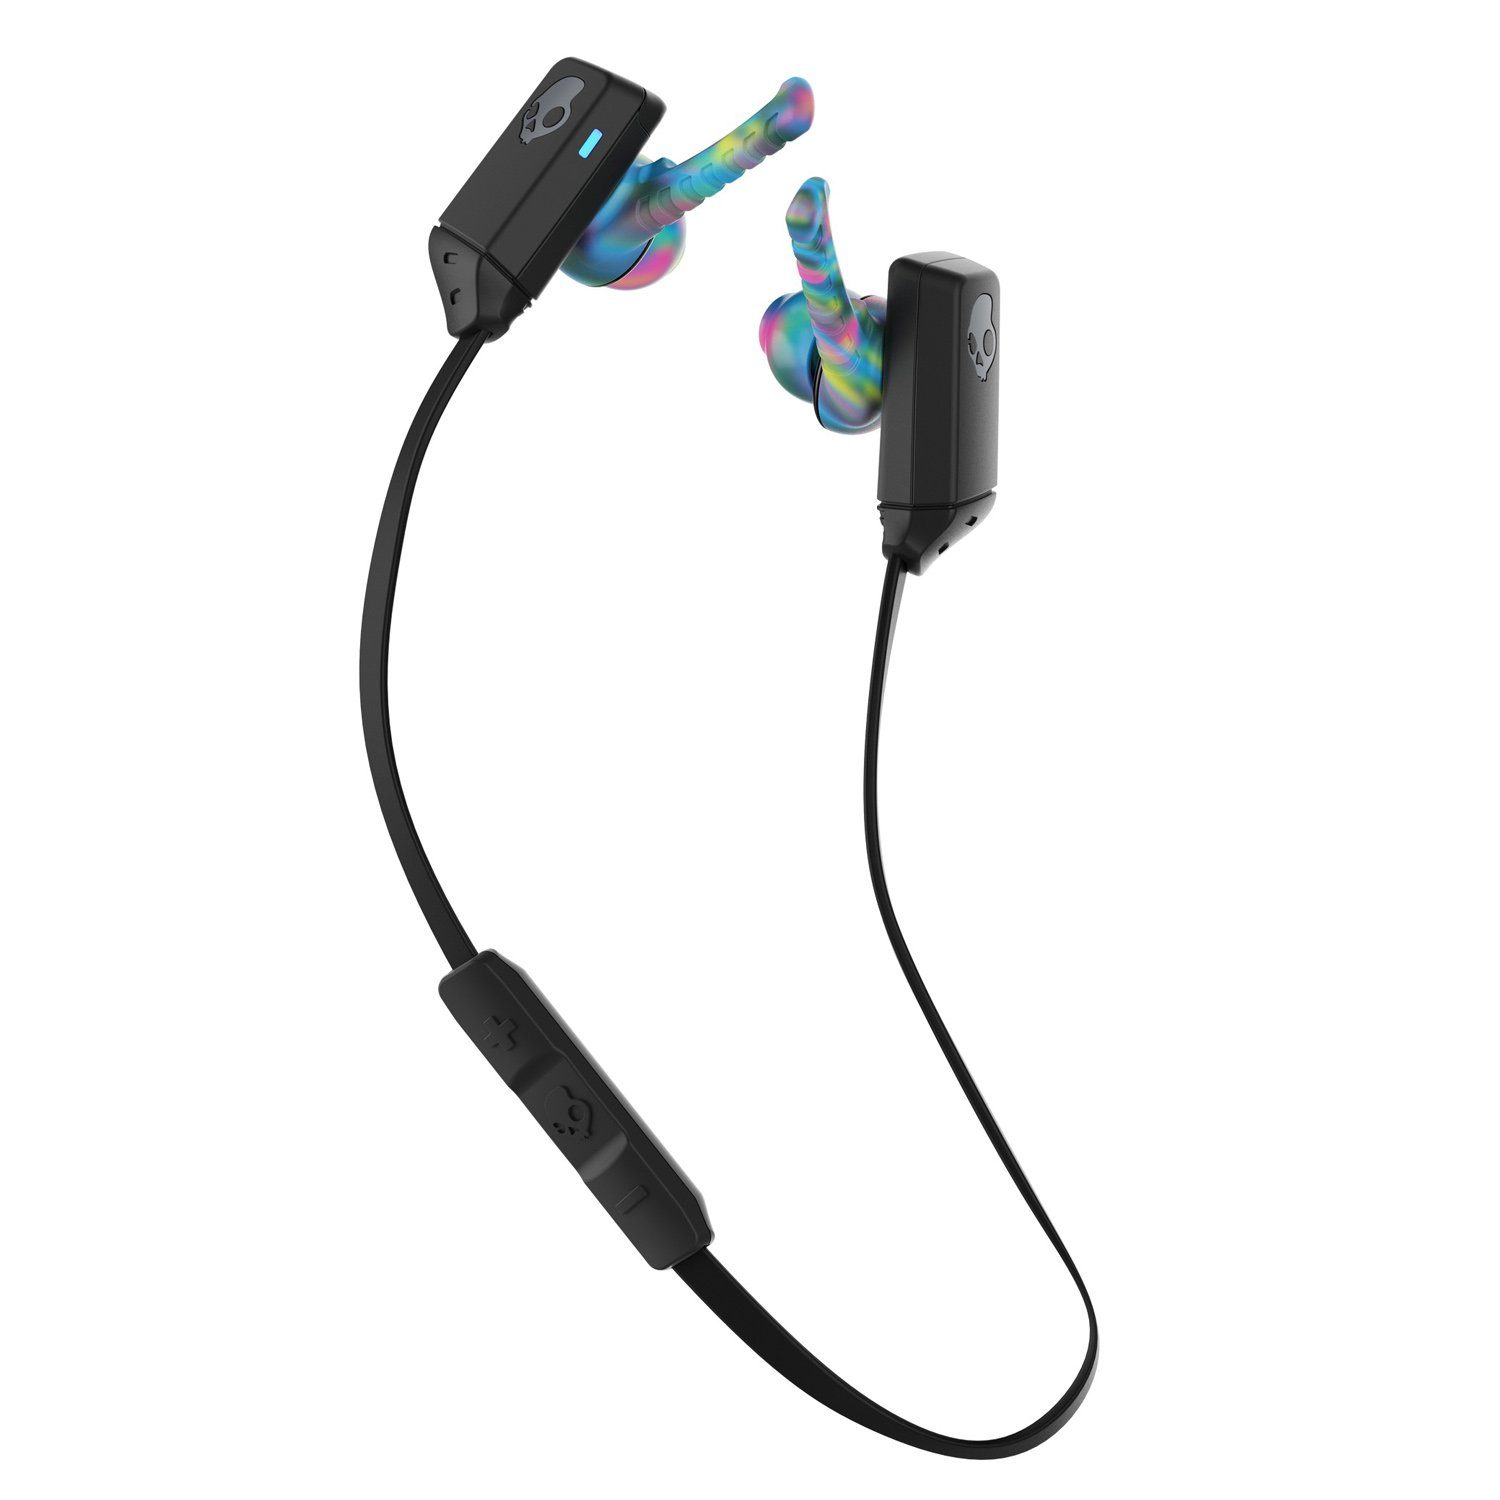 Skullcandy Xt Free Bluetooth Wireless Sweat Resistant Earbud With Microphone, Lightweight And Secure Fit, 6 Hour Rechargeable Battery, Pureclean Tech To Keep Earbuds Fresh, Black/Swirl by Skullcandy